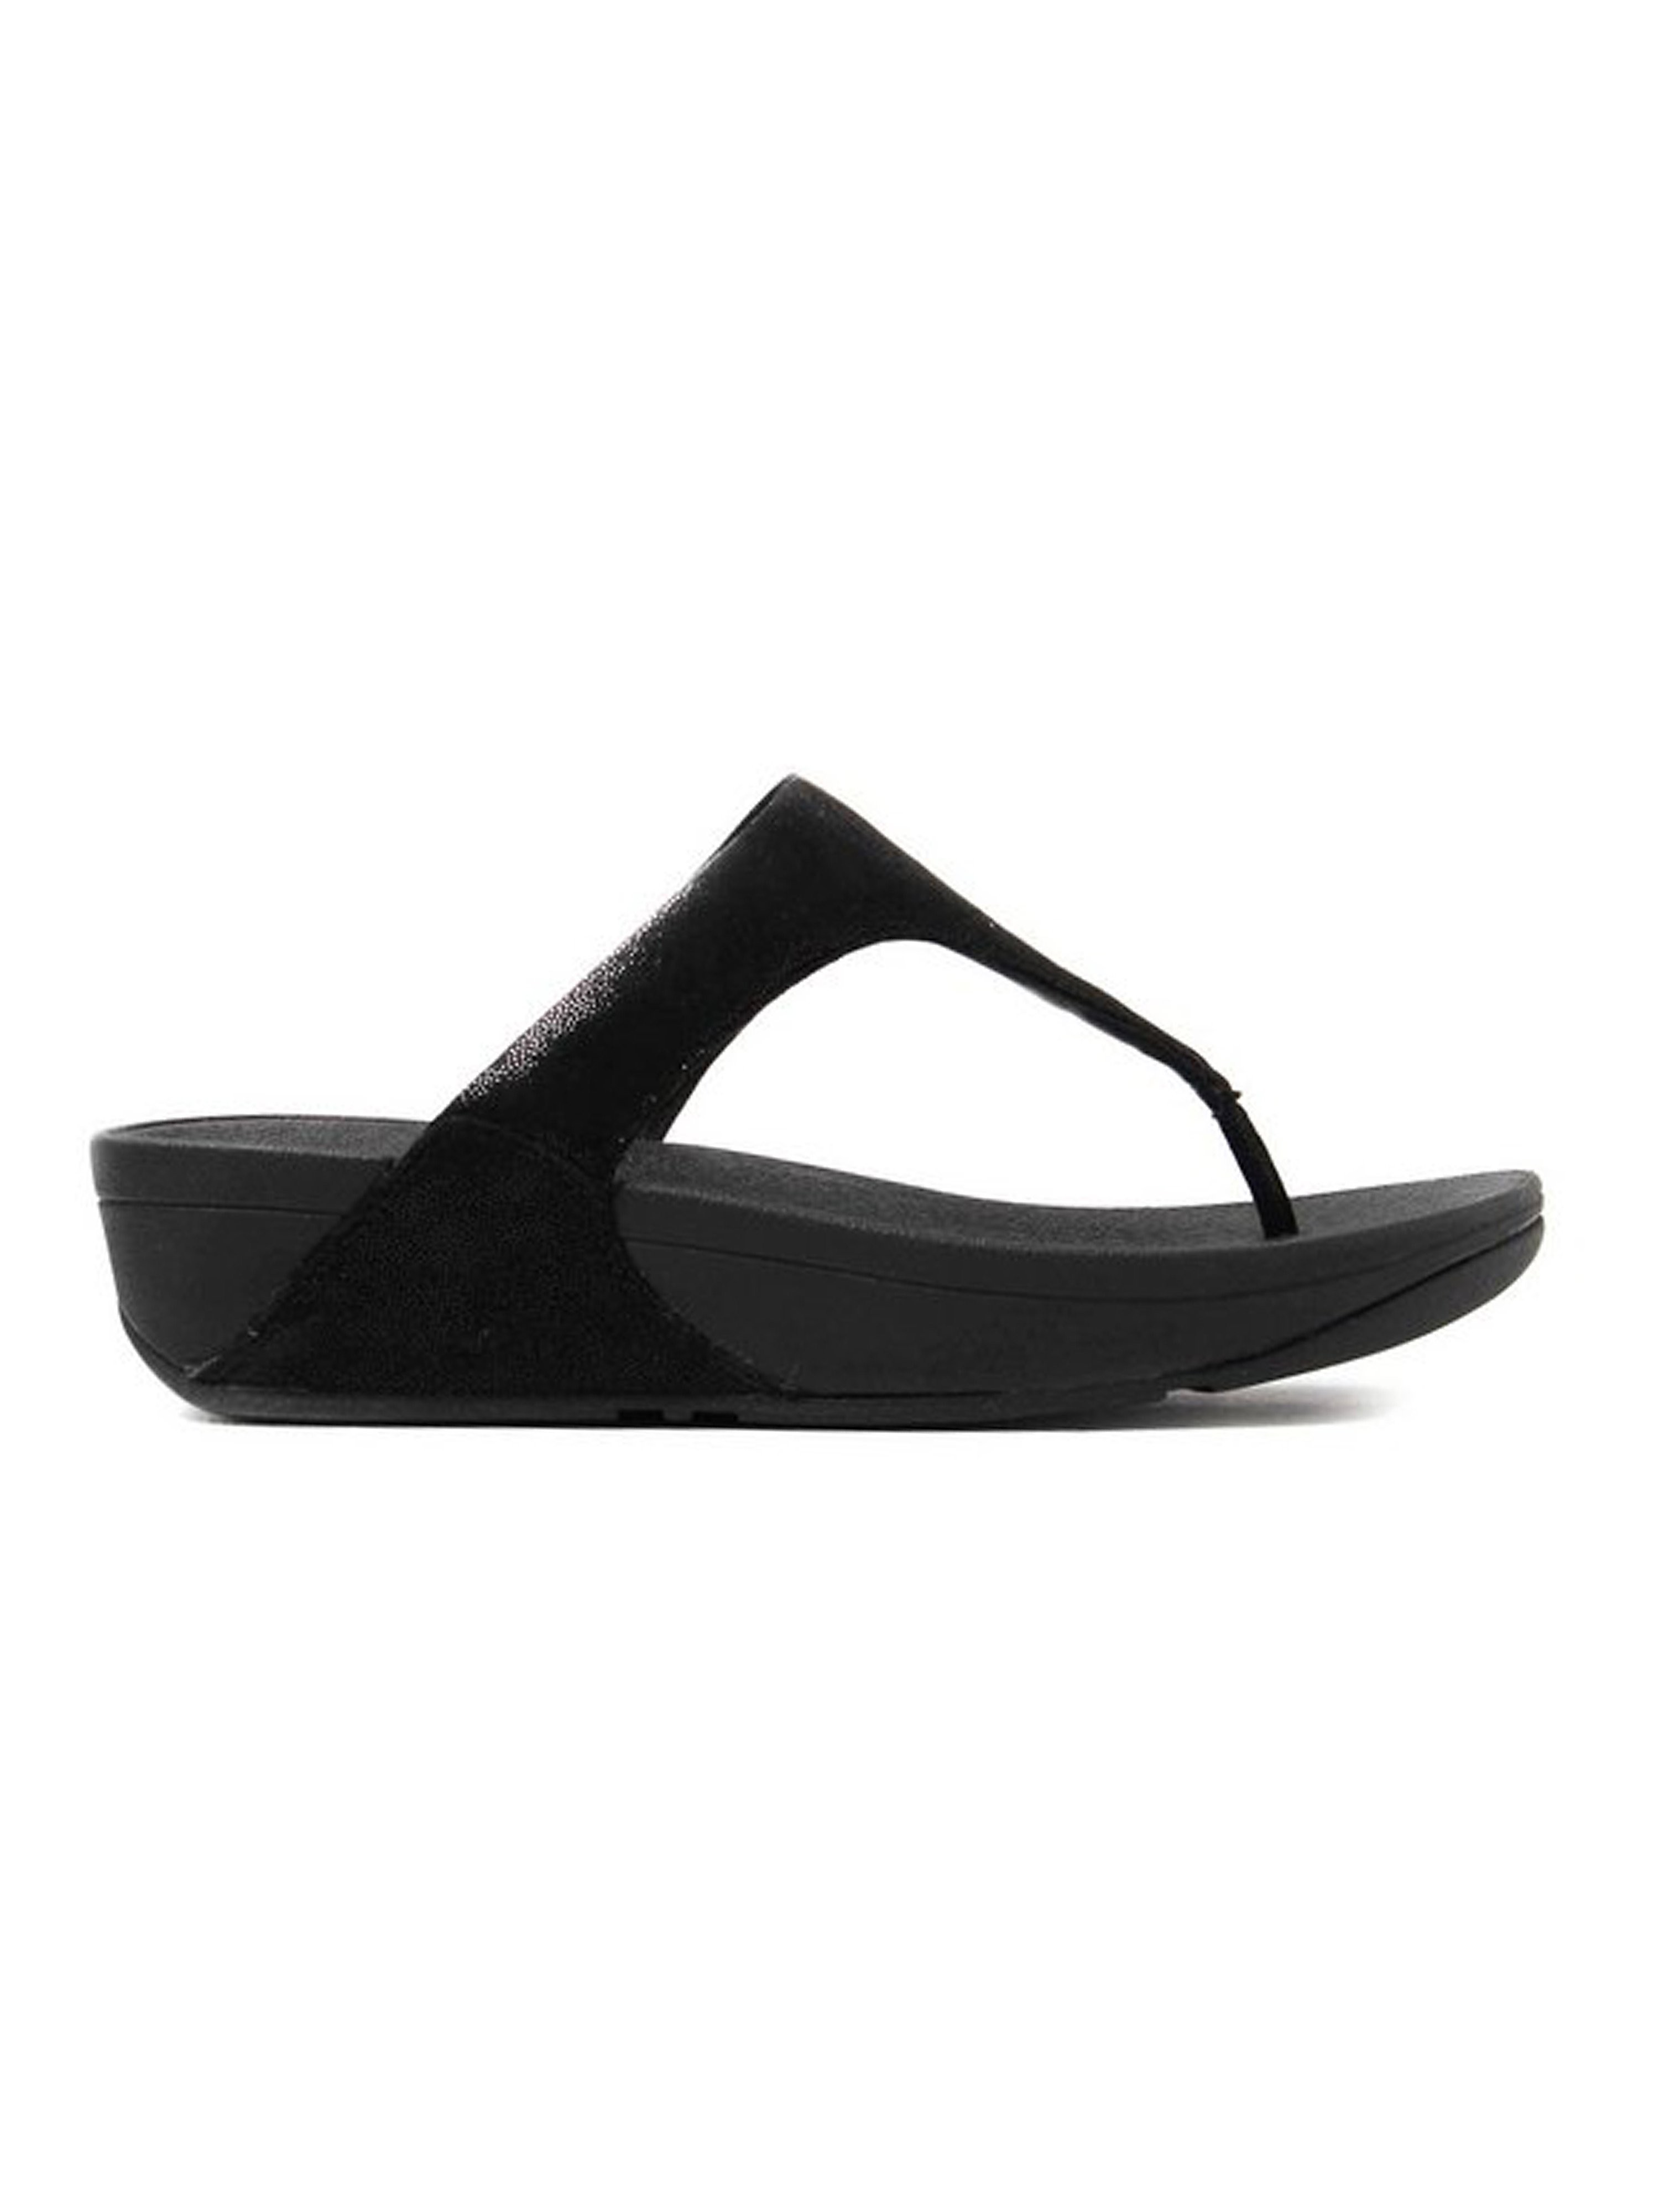 FitFlop Women's Shimmy Suede Toe-Post Sandals Black Glimmer